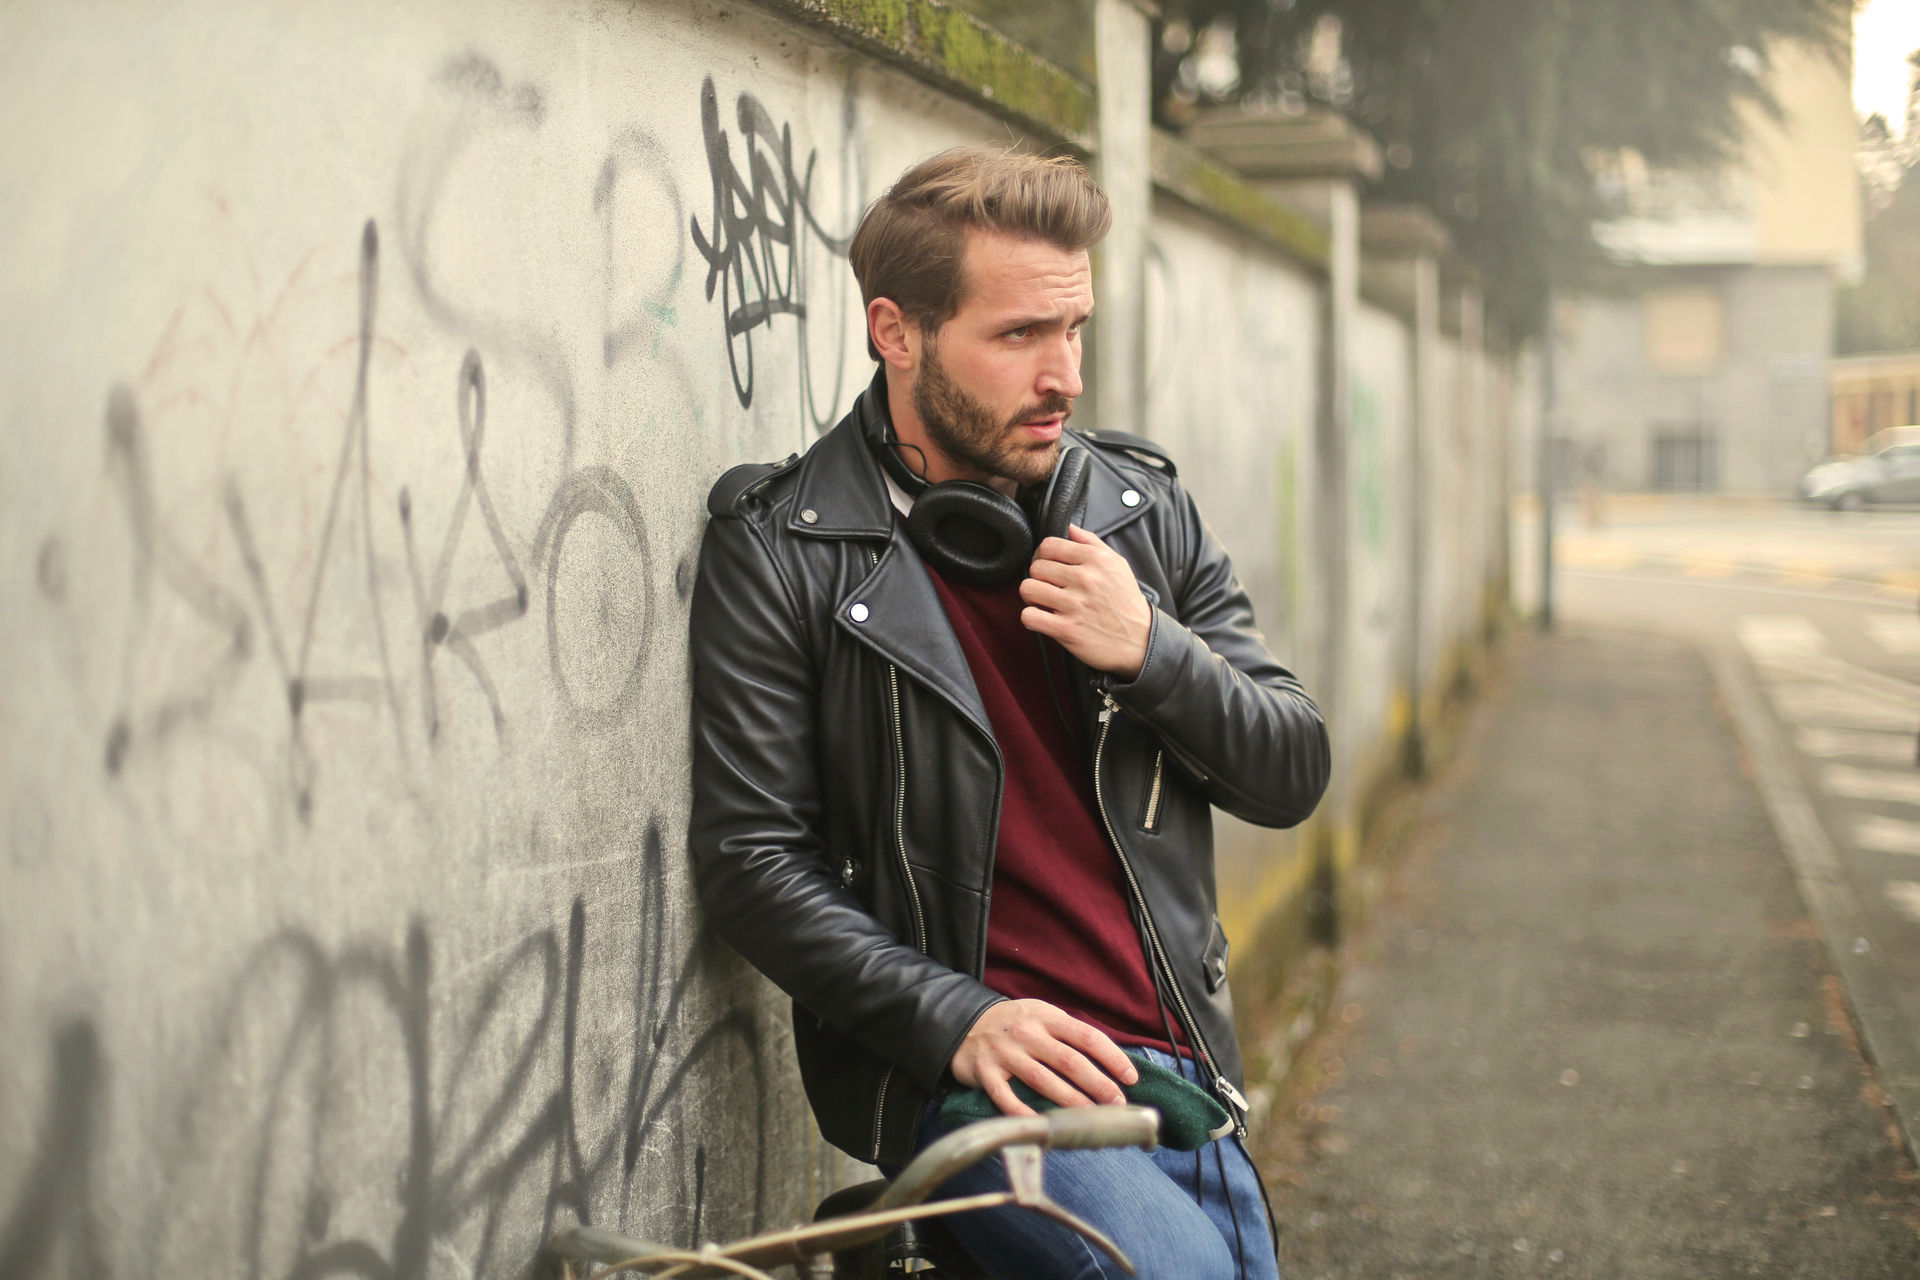 beard-bicycle-bike-826380.jpg